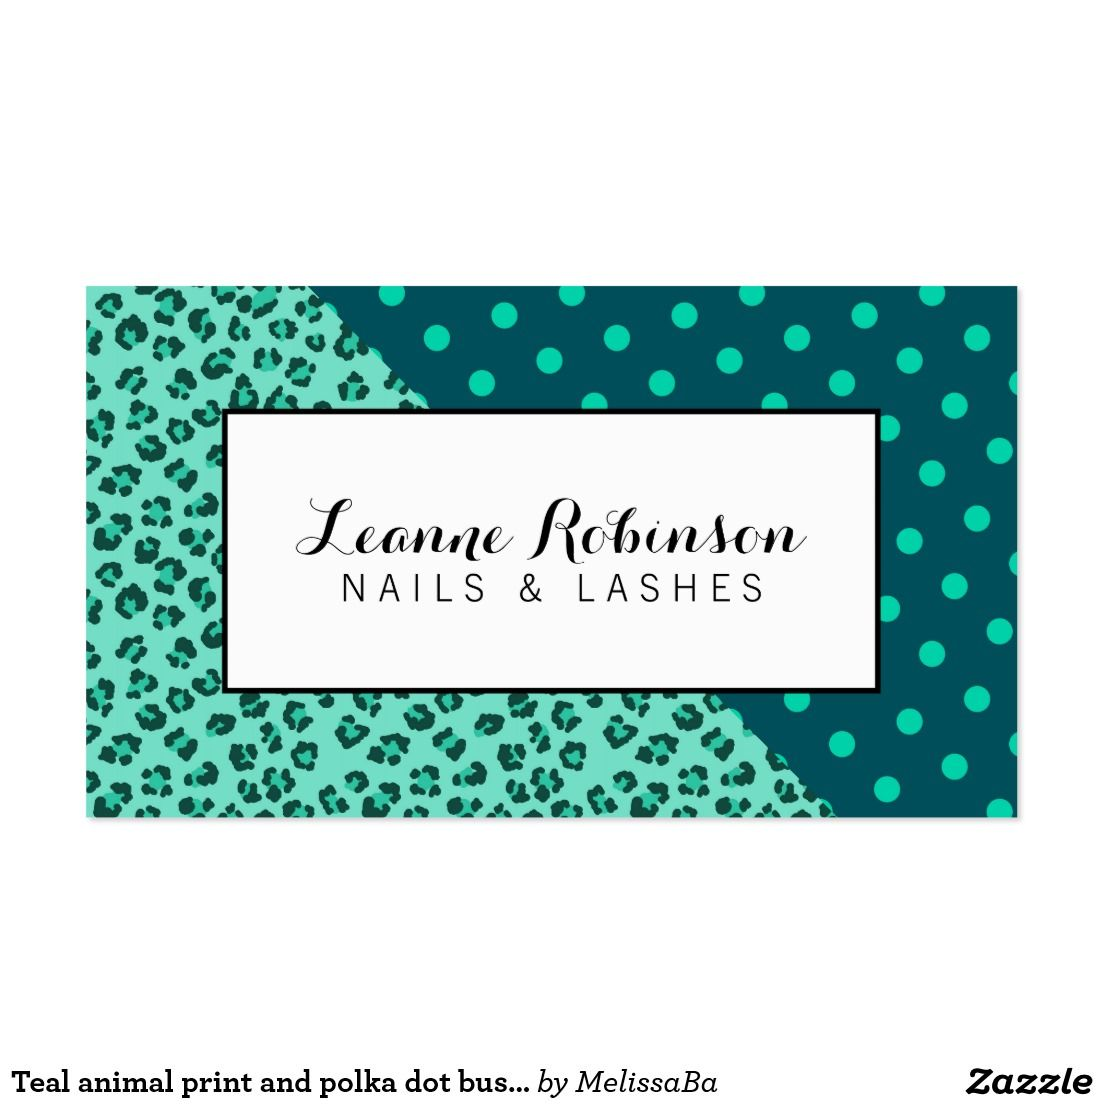 Teal animal print and polka dot business card | Business Cards ...